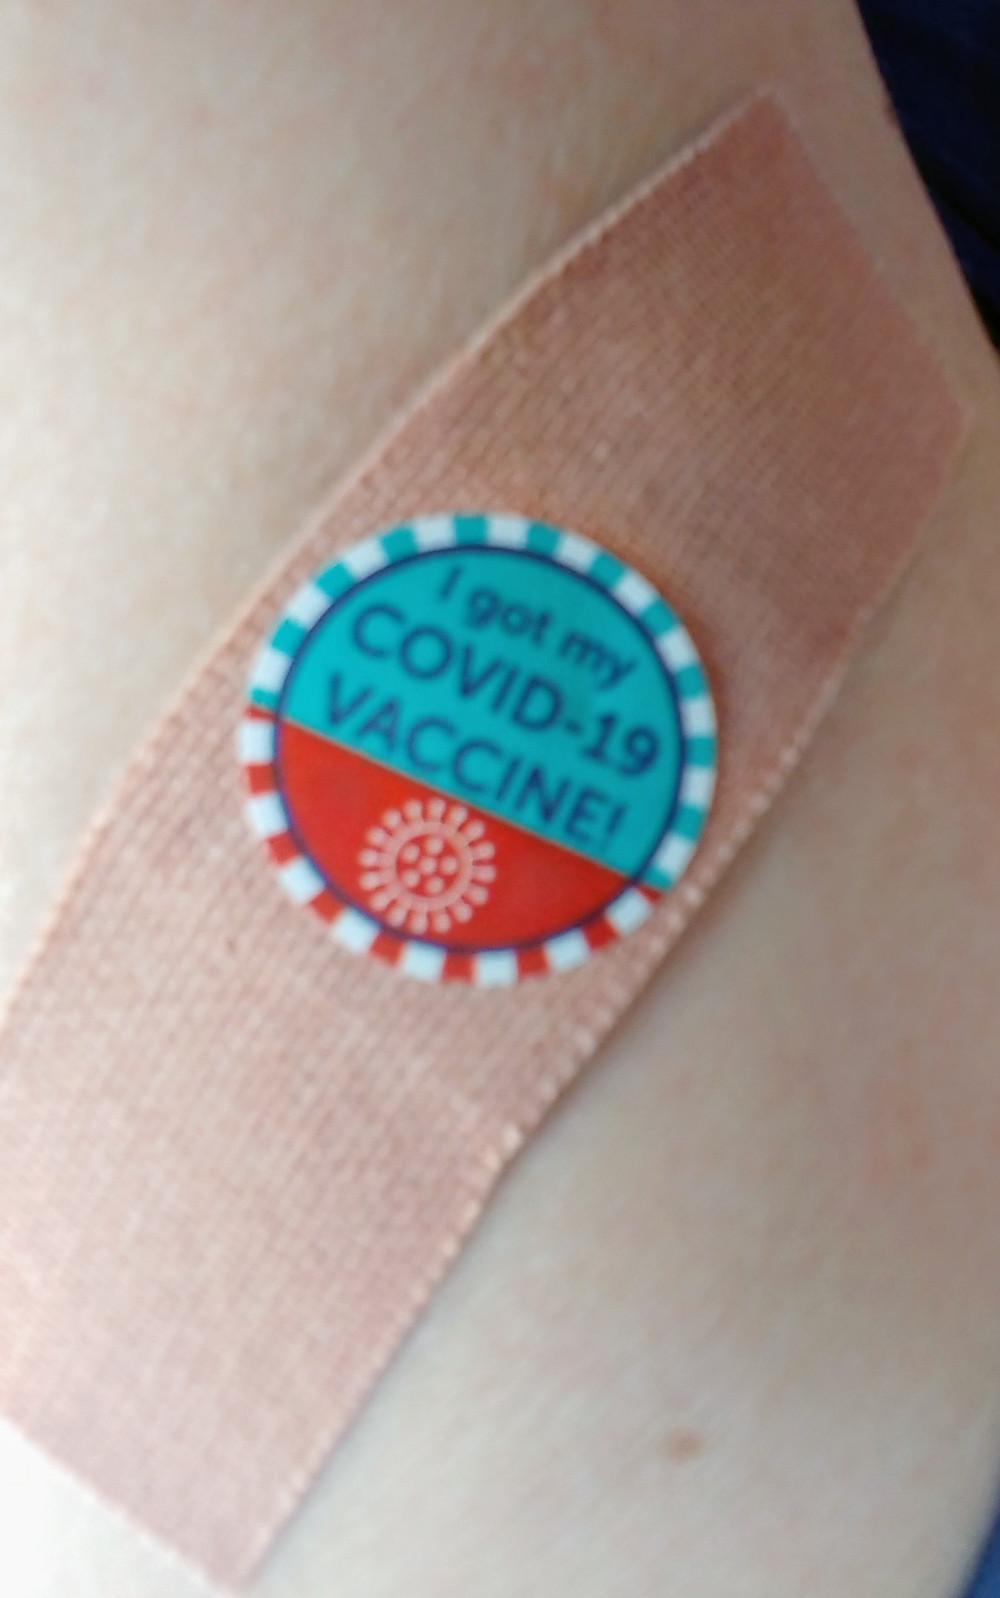 The Arizona vaccine band aid and proof of vaccination sticker